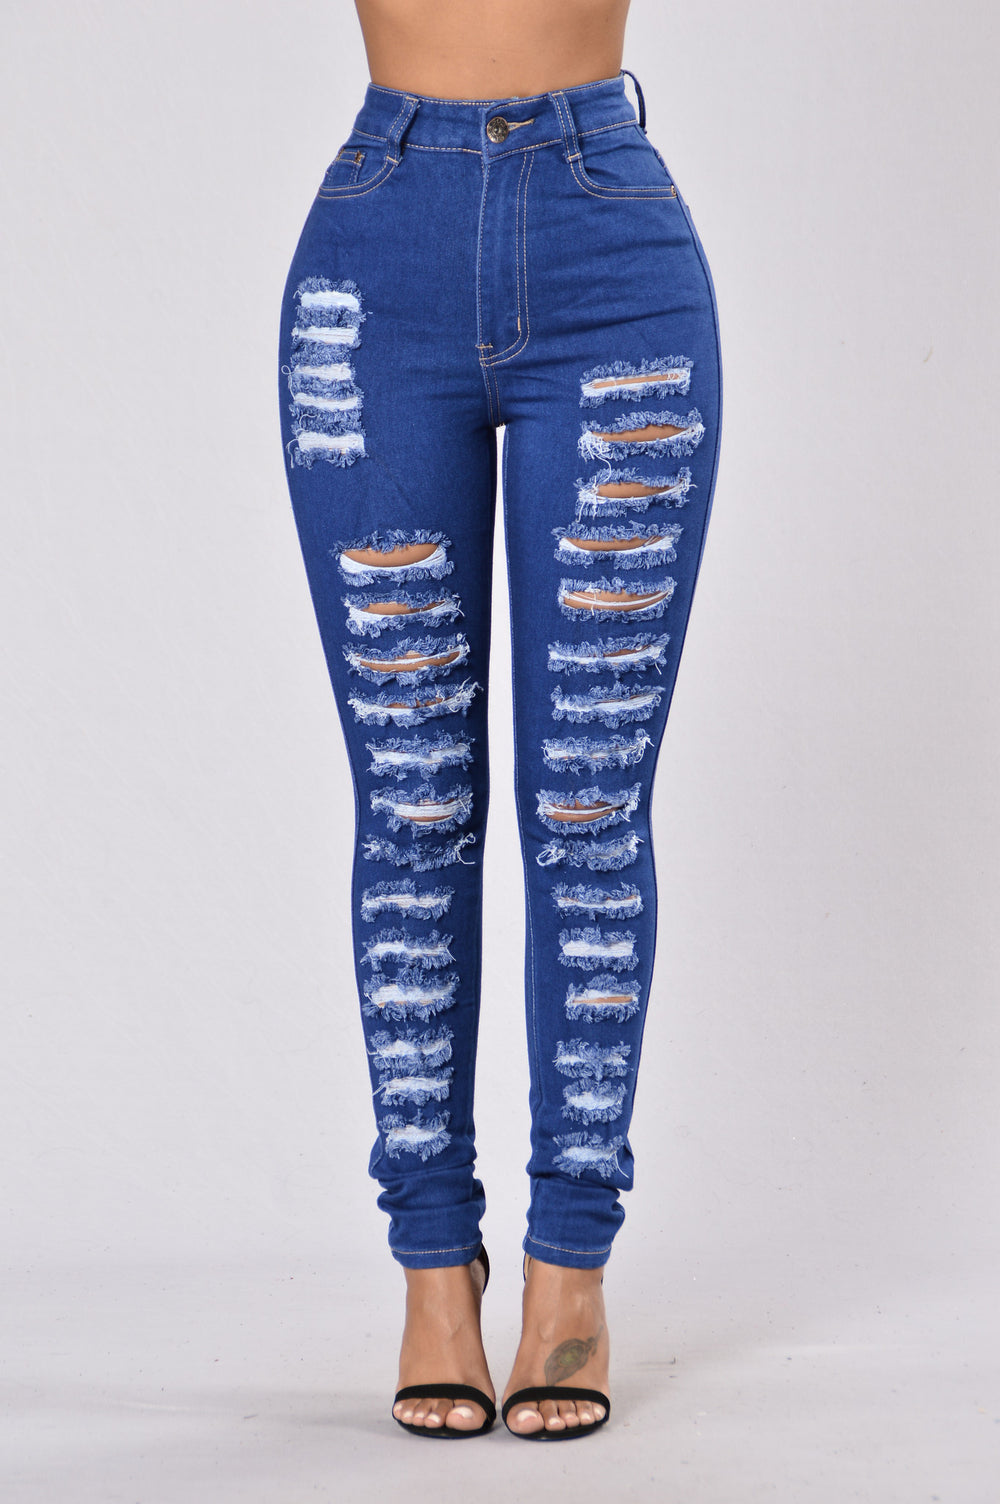 Stand Out In The Crowd Jeans - Royal Blue